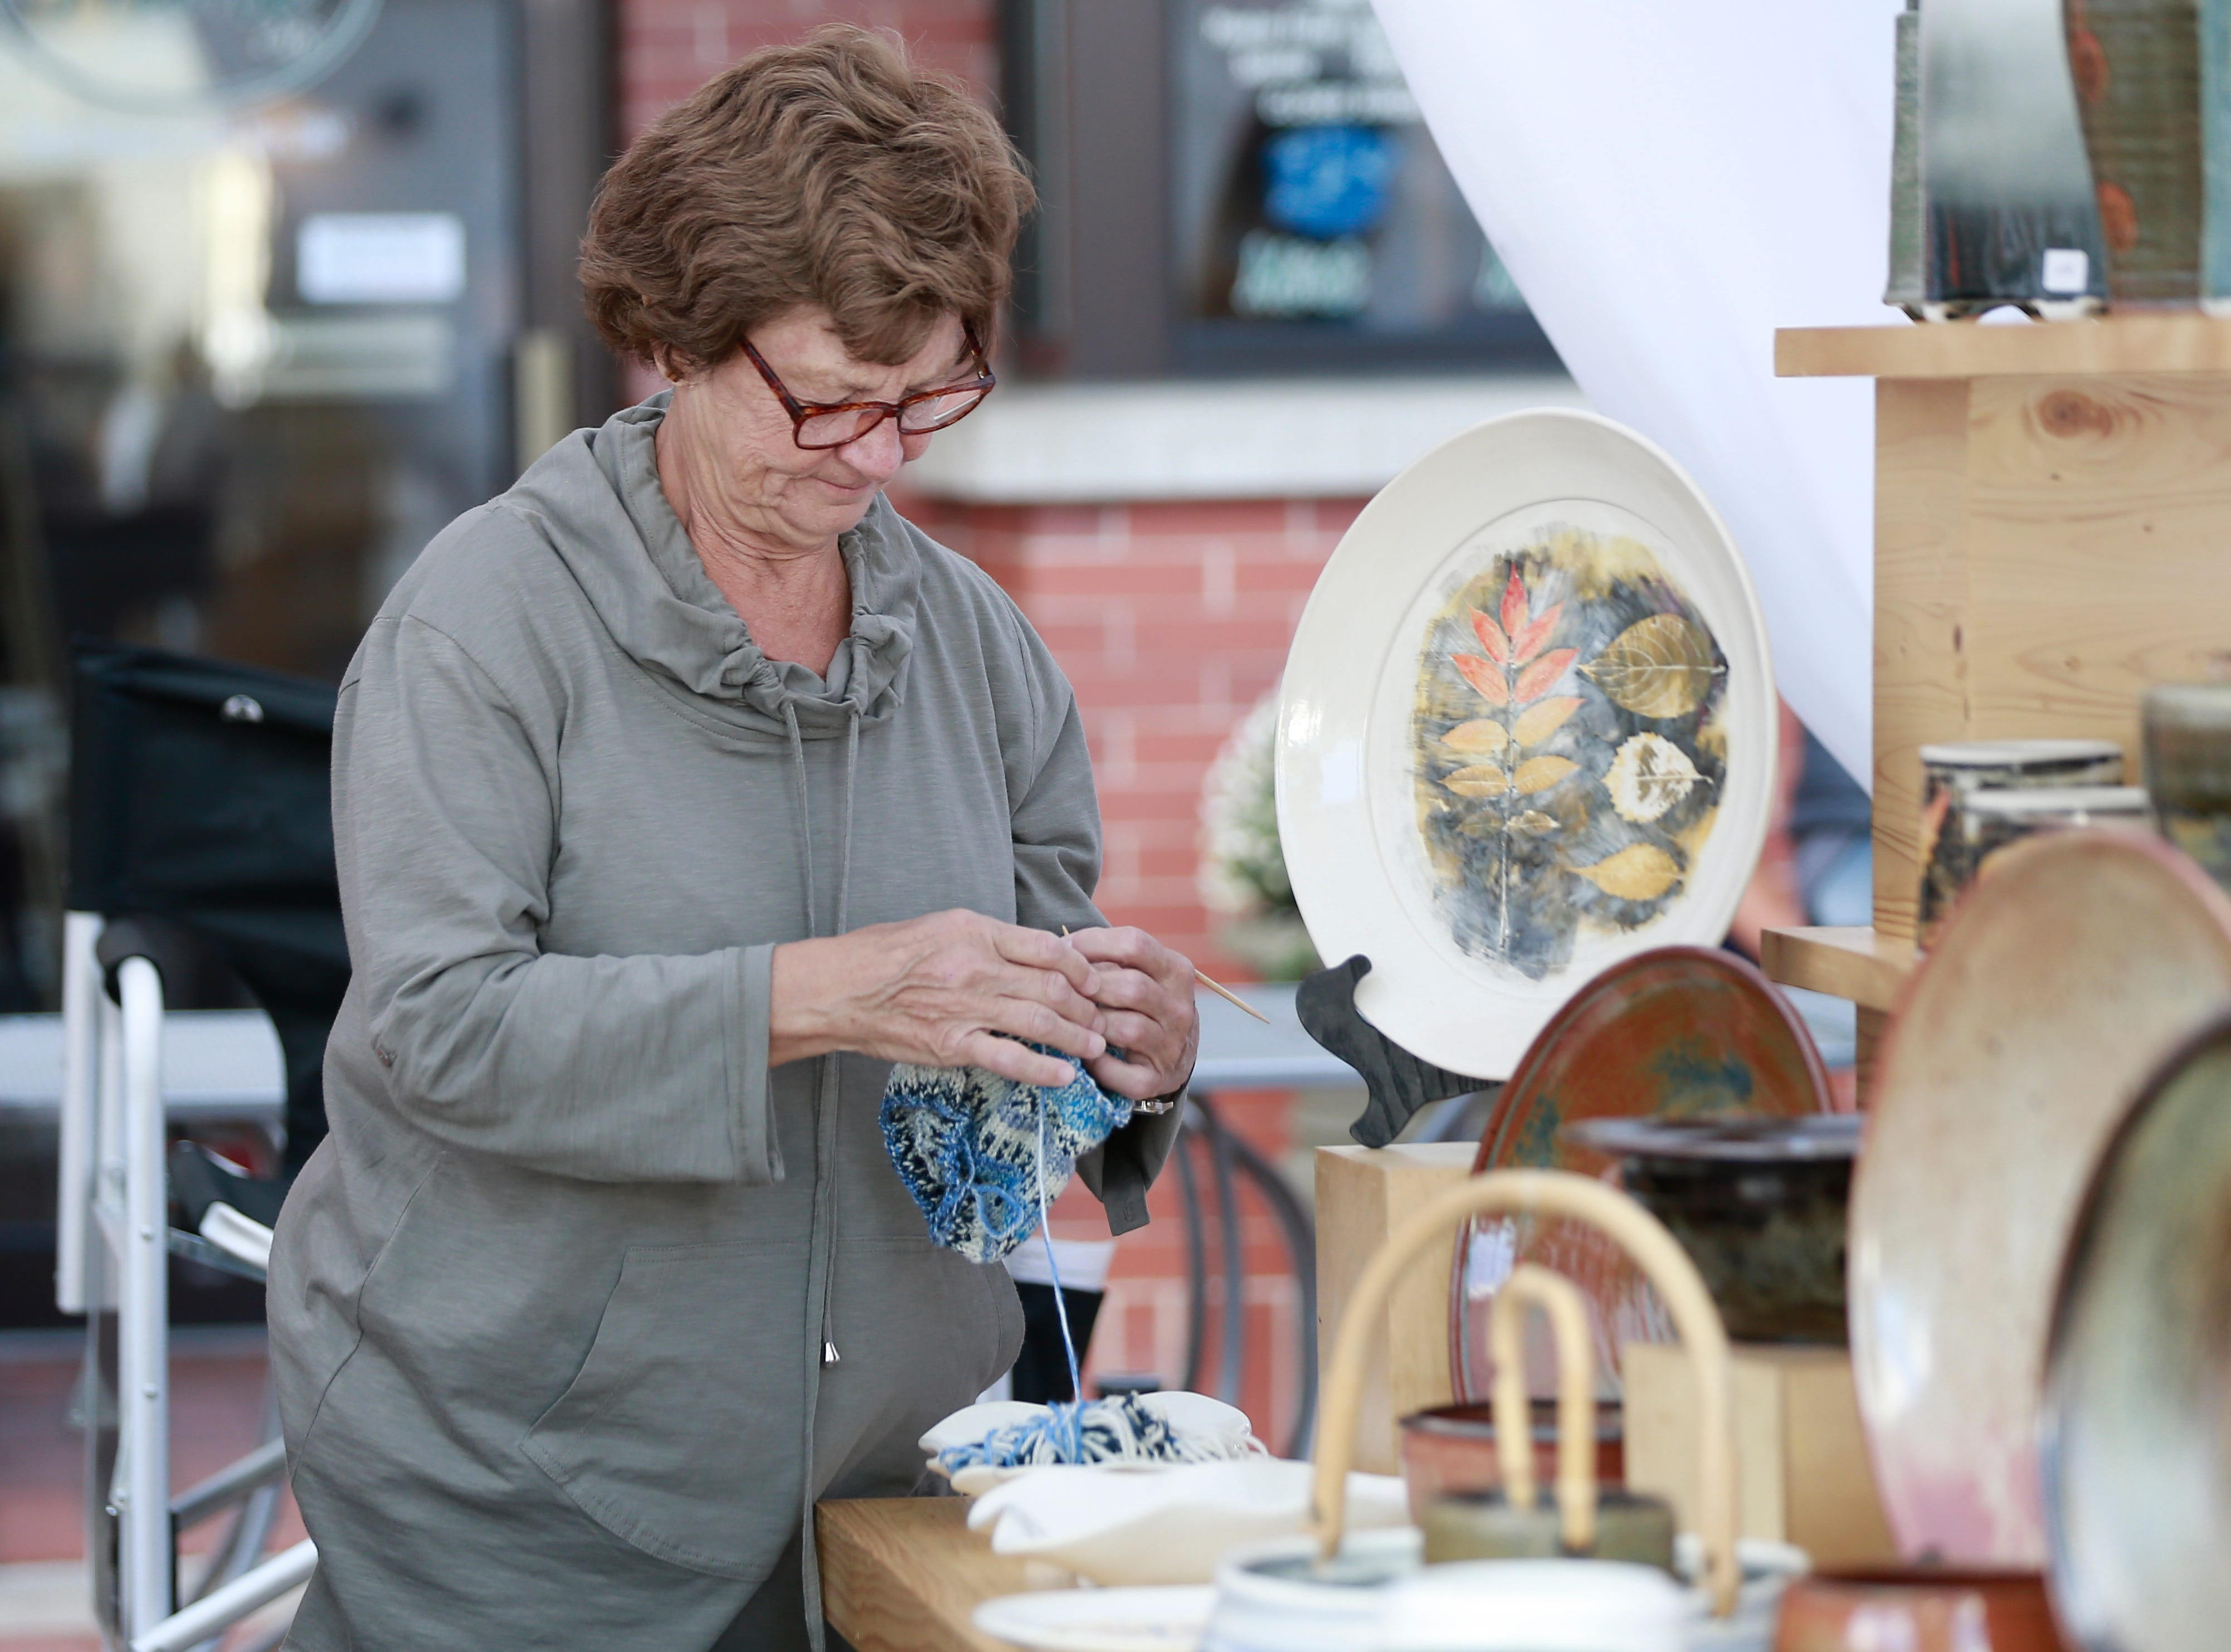 A vendor seen doing crochet during Wausau Festival of Arts event held Saturday, Sept. 8, 2018, in downtown Wausau, Wis. T'xer Zhon Kha/USA TODAY NETWORK-Wisconsin